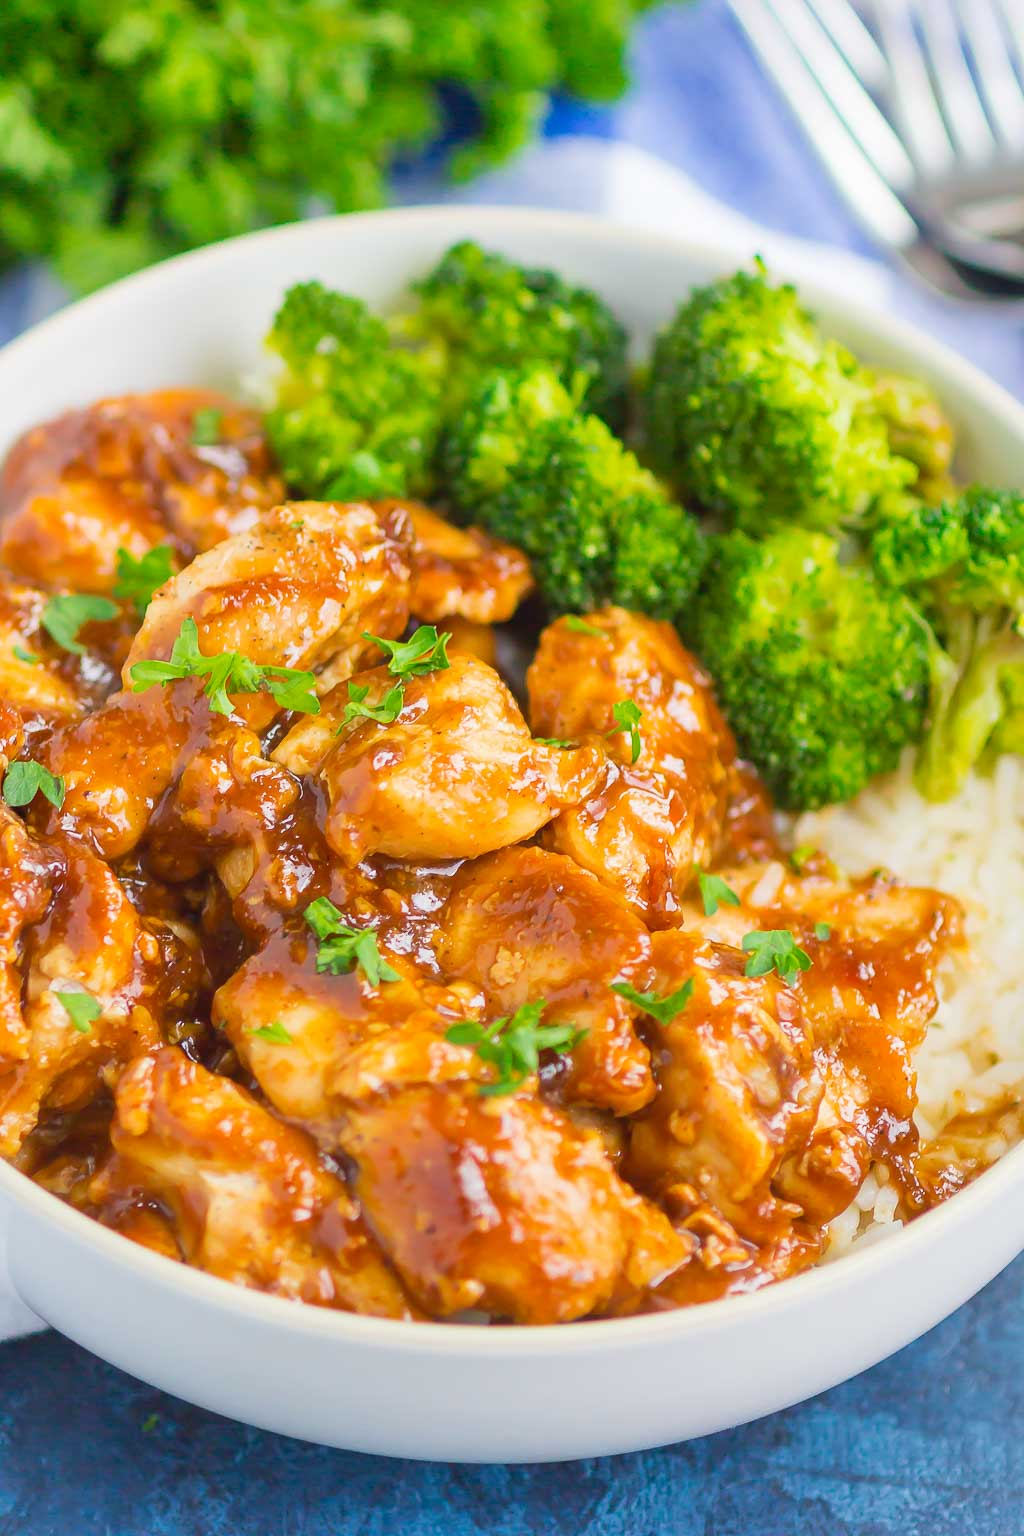 Easy Teriyaki Chicken is a simple, one pan dish that's perfect for busy weeknights. Sweet garlic chicken is coated with an easy teriyaki sauce and tastes even better than the takeout kind!